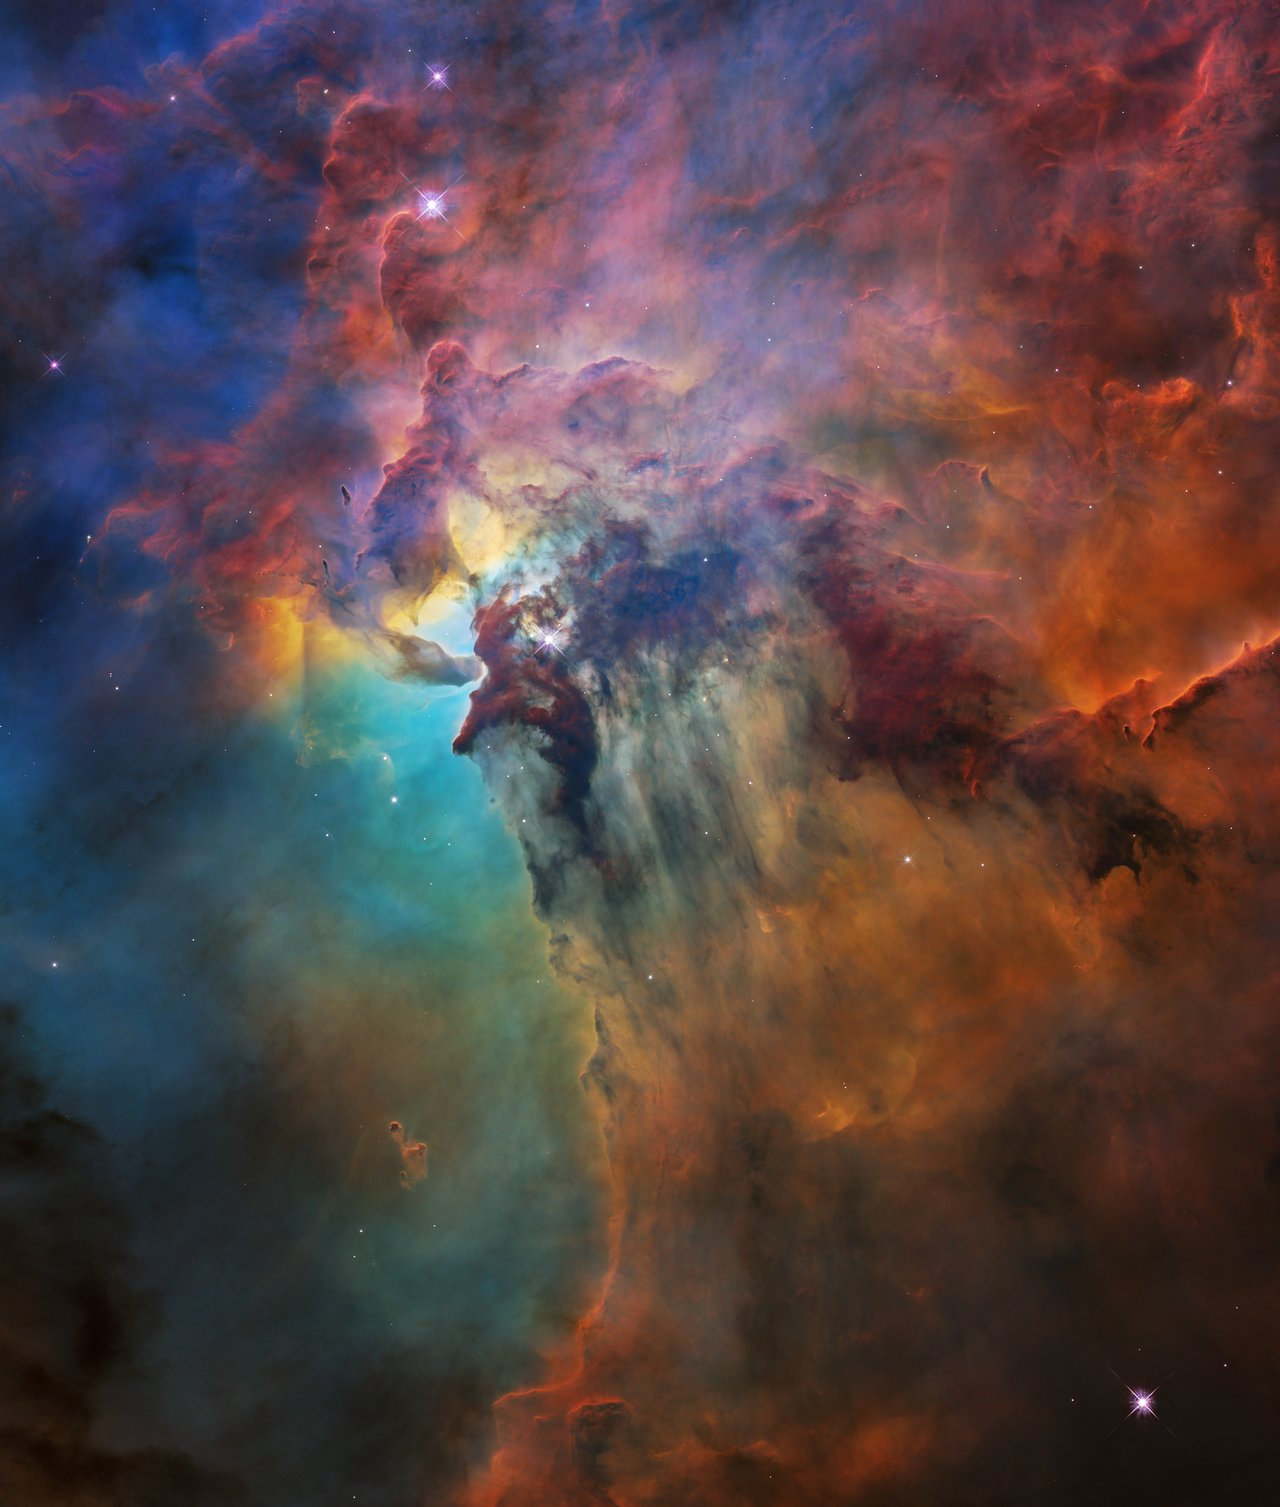 Hubble's 28th birthday picture: The Lagoon Nebula (Uncropped image)